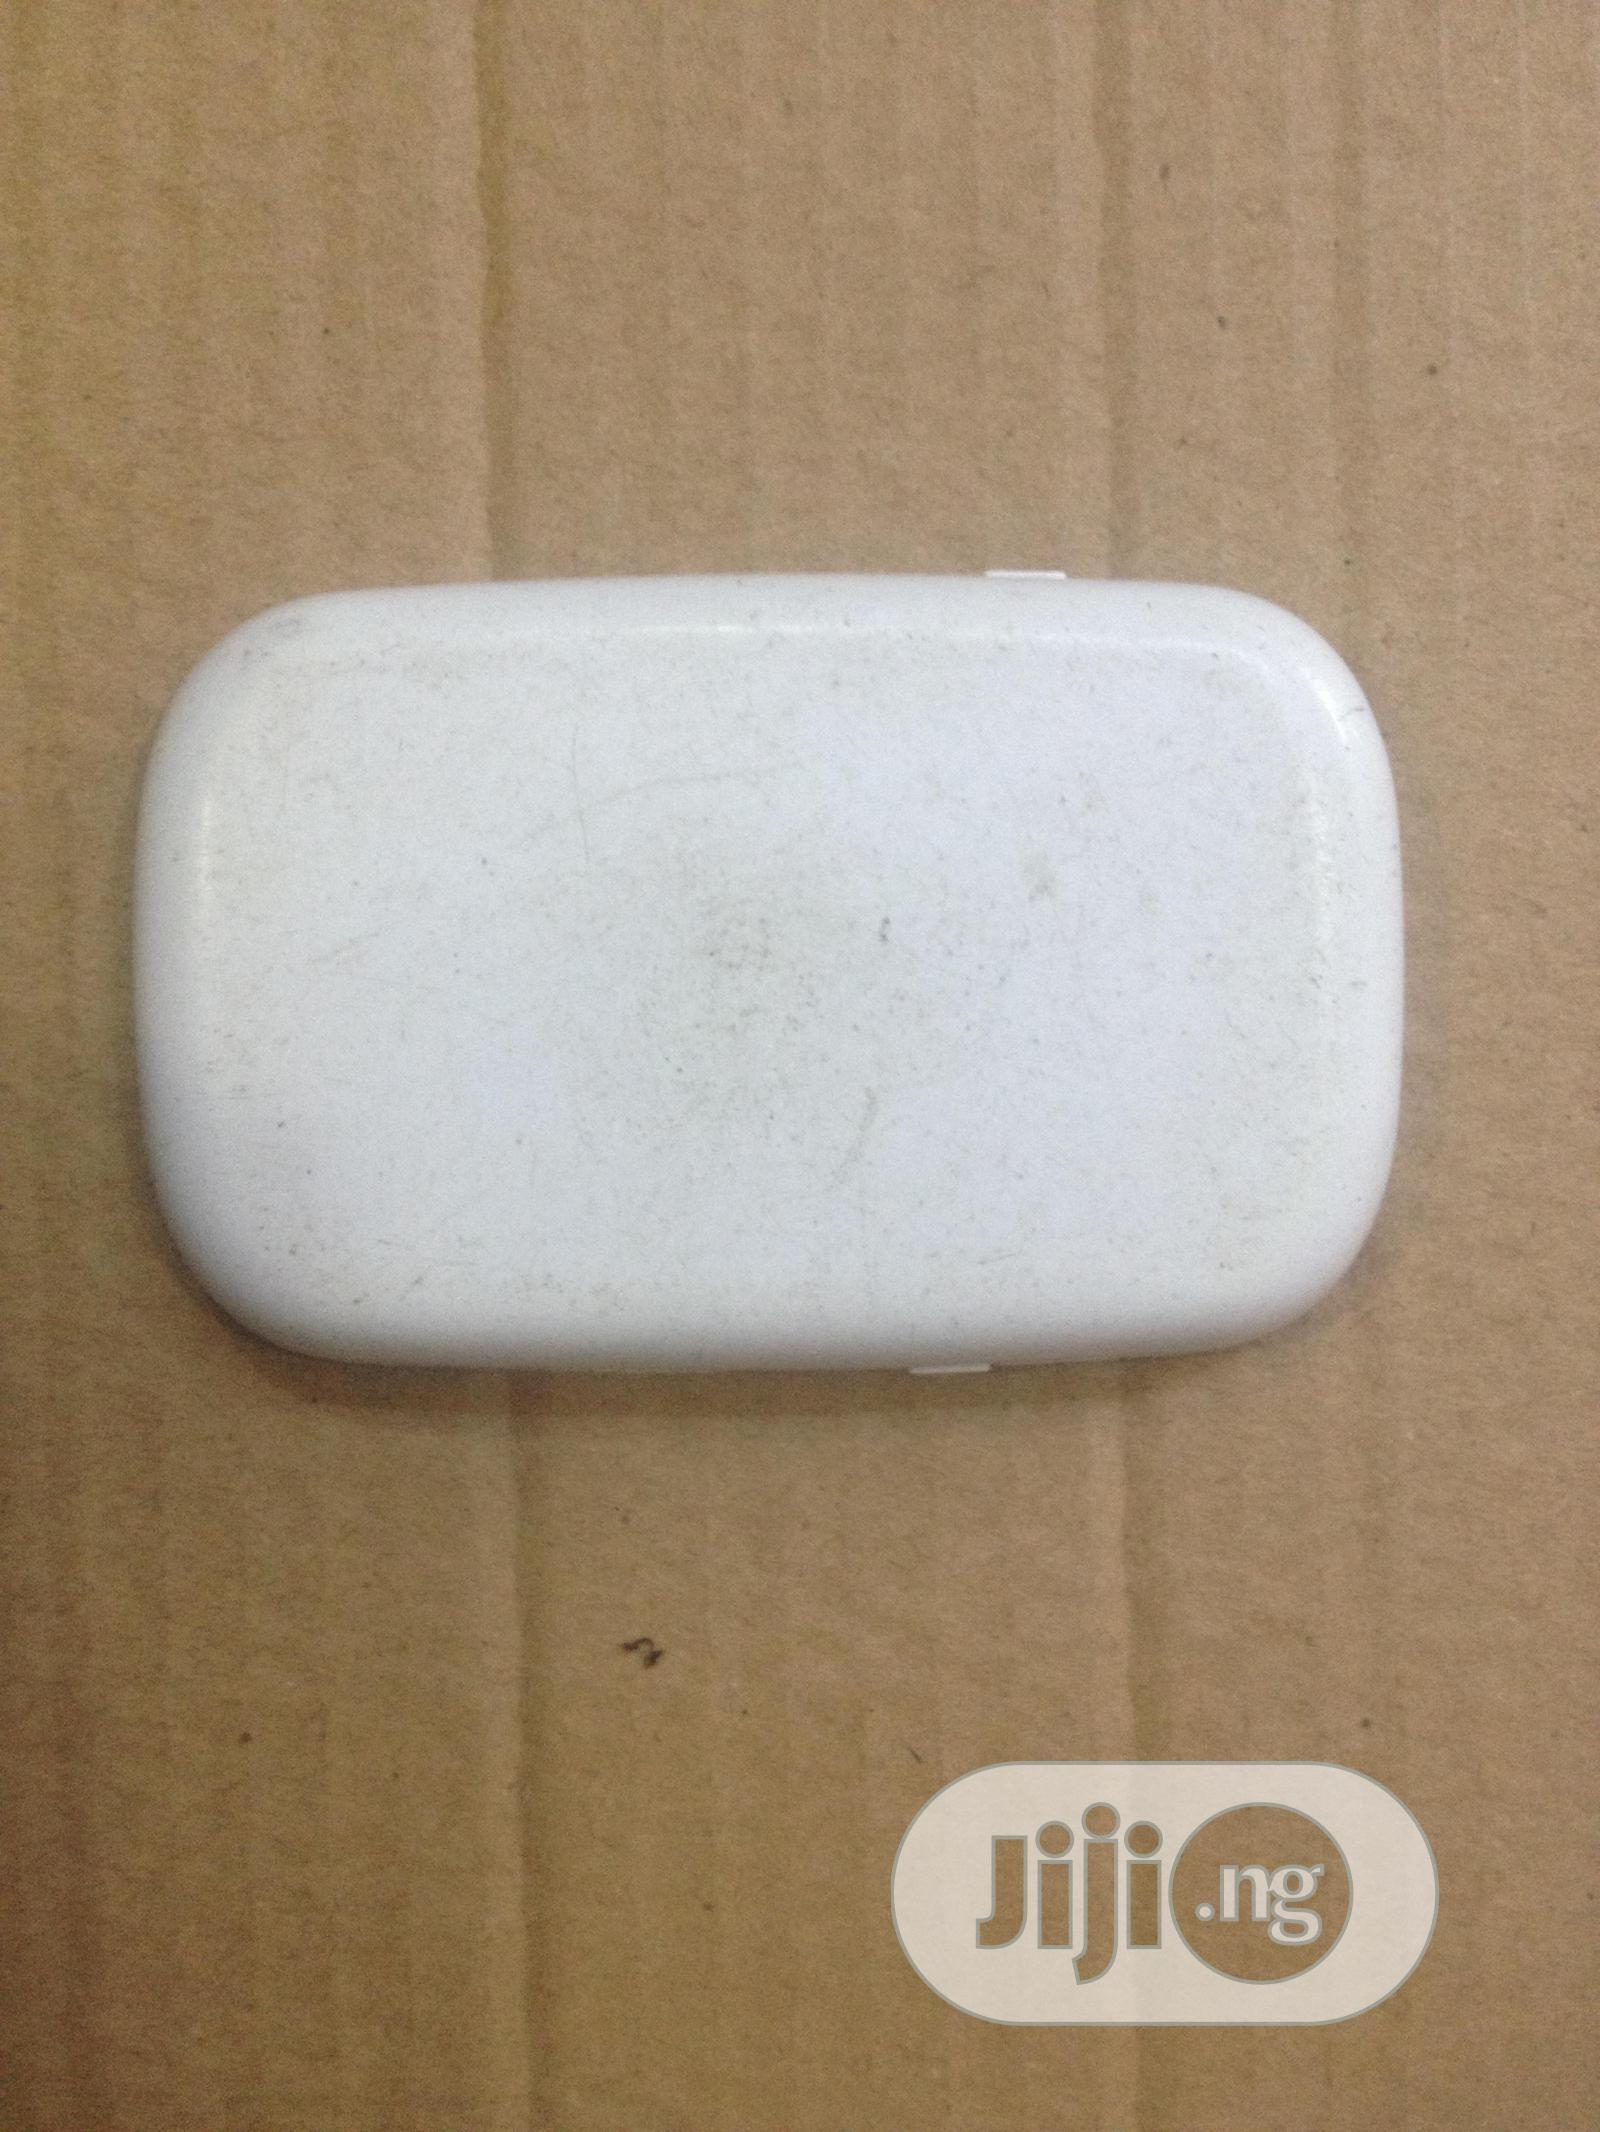 Busy 3G Universal Pocket Mobile Wifi Router Hotspot